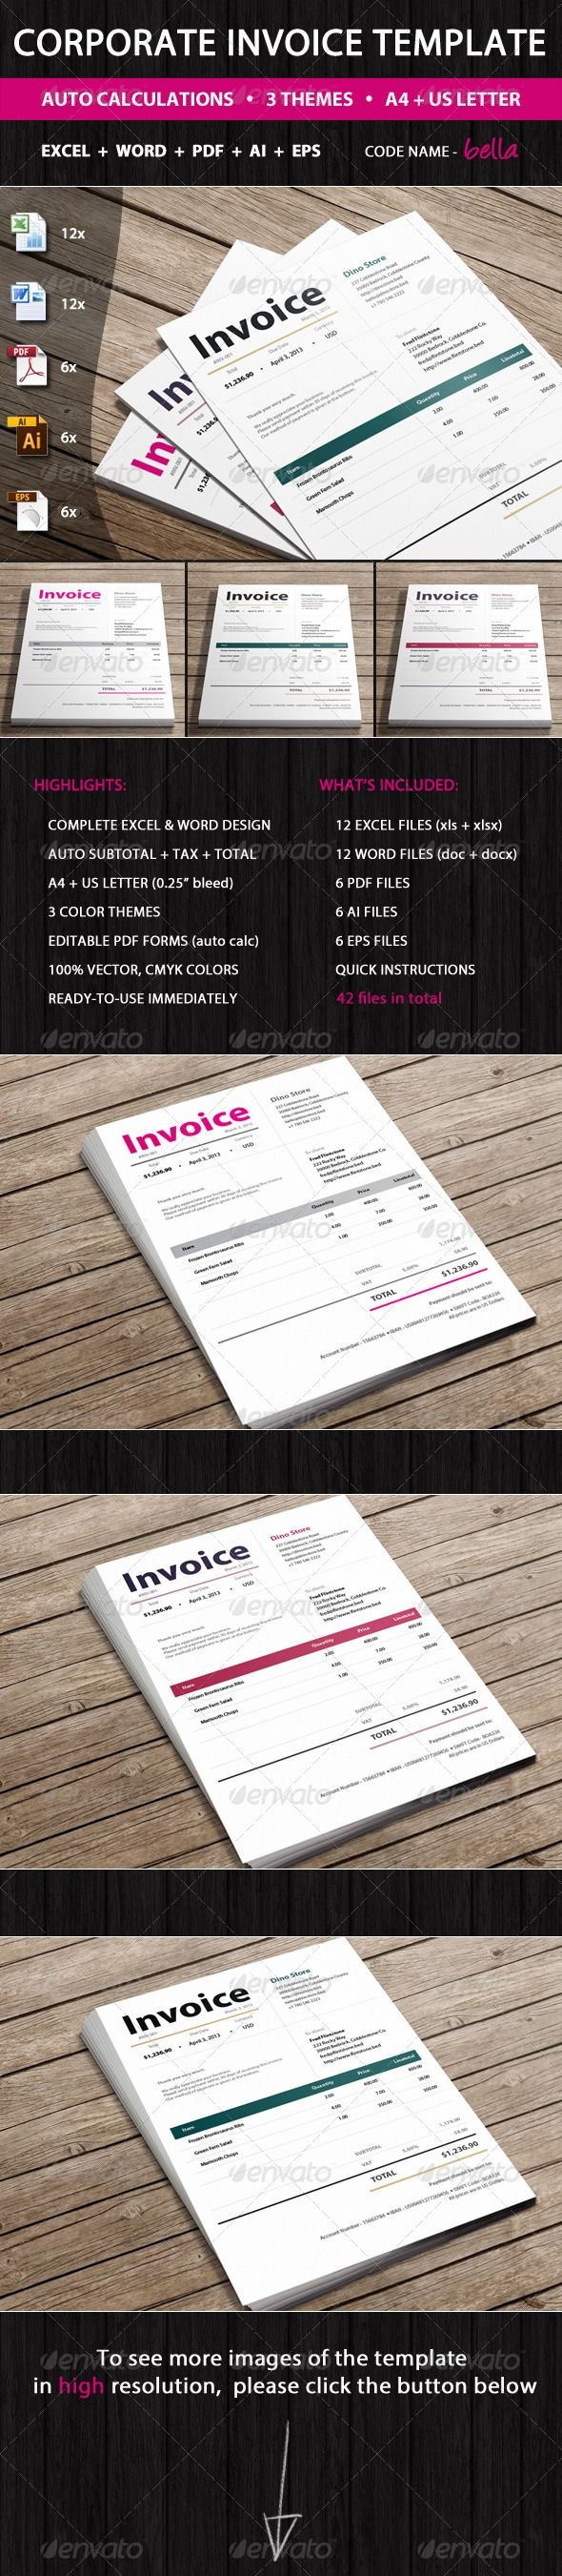 Invoices #GraphicRiver Invoices Bella is professional invoices template by Invoicebus in 3 color variants, ready to guideline and simplify your invoicing process. Additionally, we believe that its clean, elegant design and subtle layout will reinforce your professionalism and make you stand out. Bella's structure is generic, so you may use it for various business types or services. File Formats: Excel (.xls, .xlsx), Word (.doc, .docx), PDF, AI, EPS Excel, Word and PDF files are super simple to u